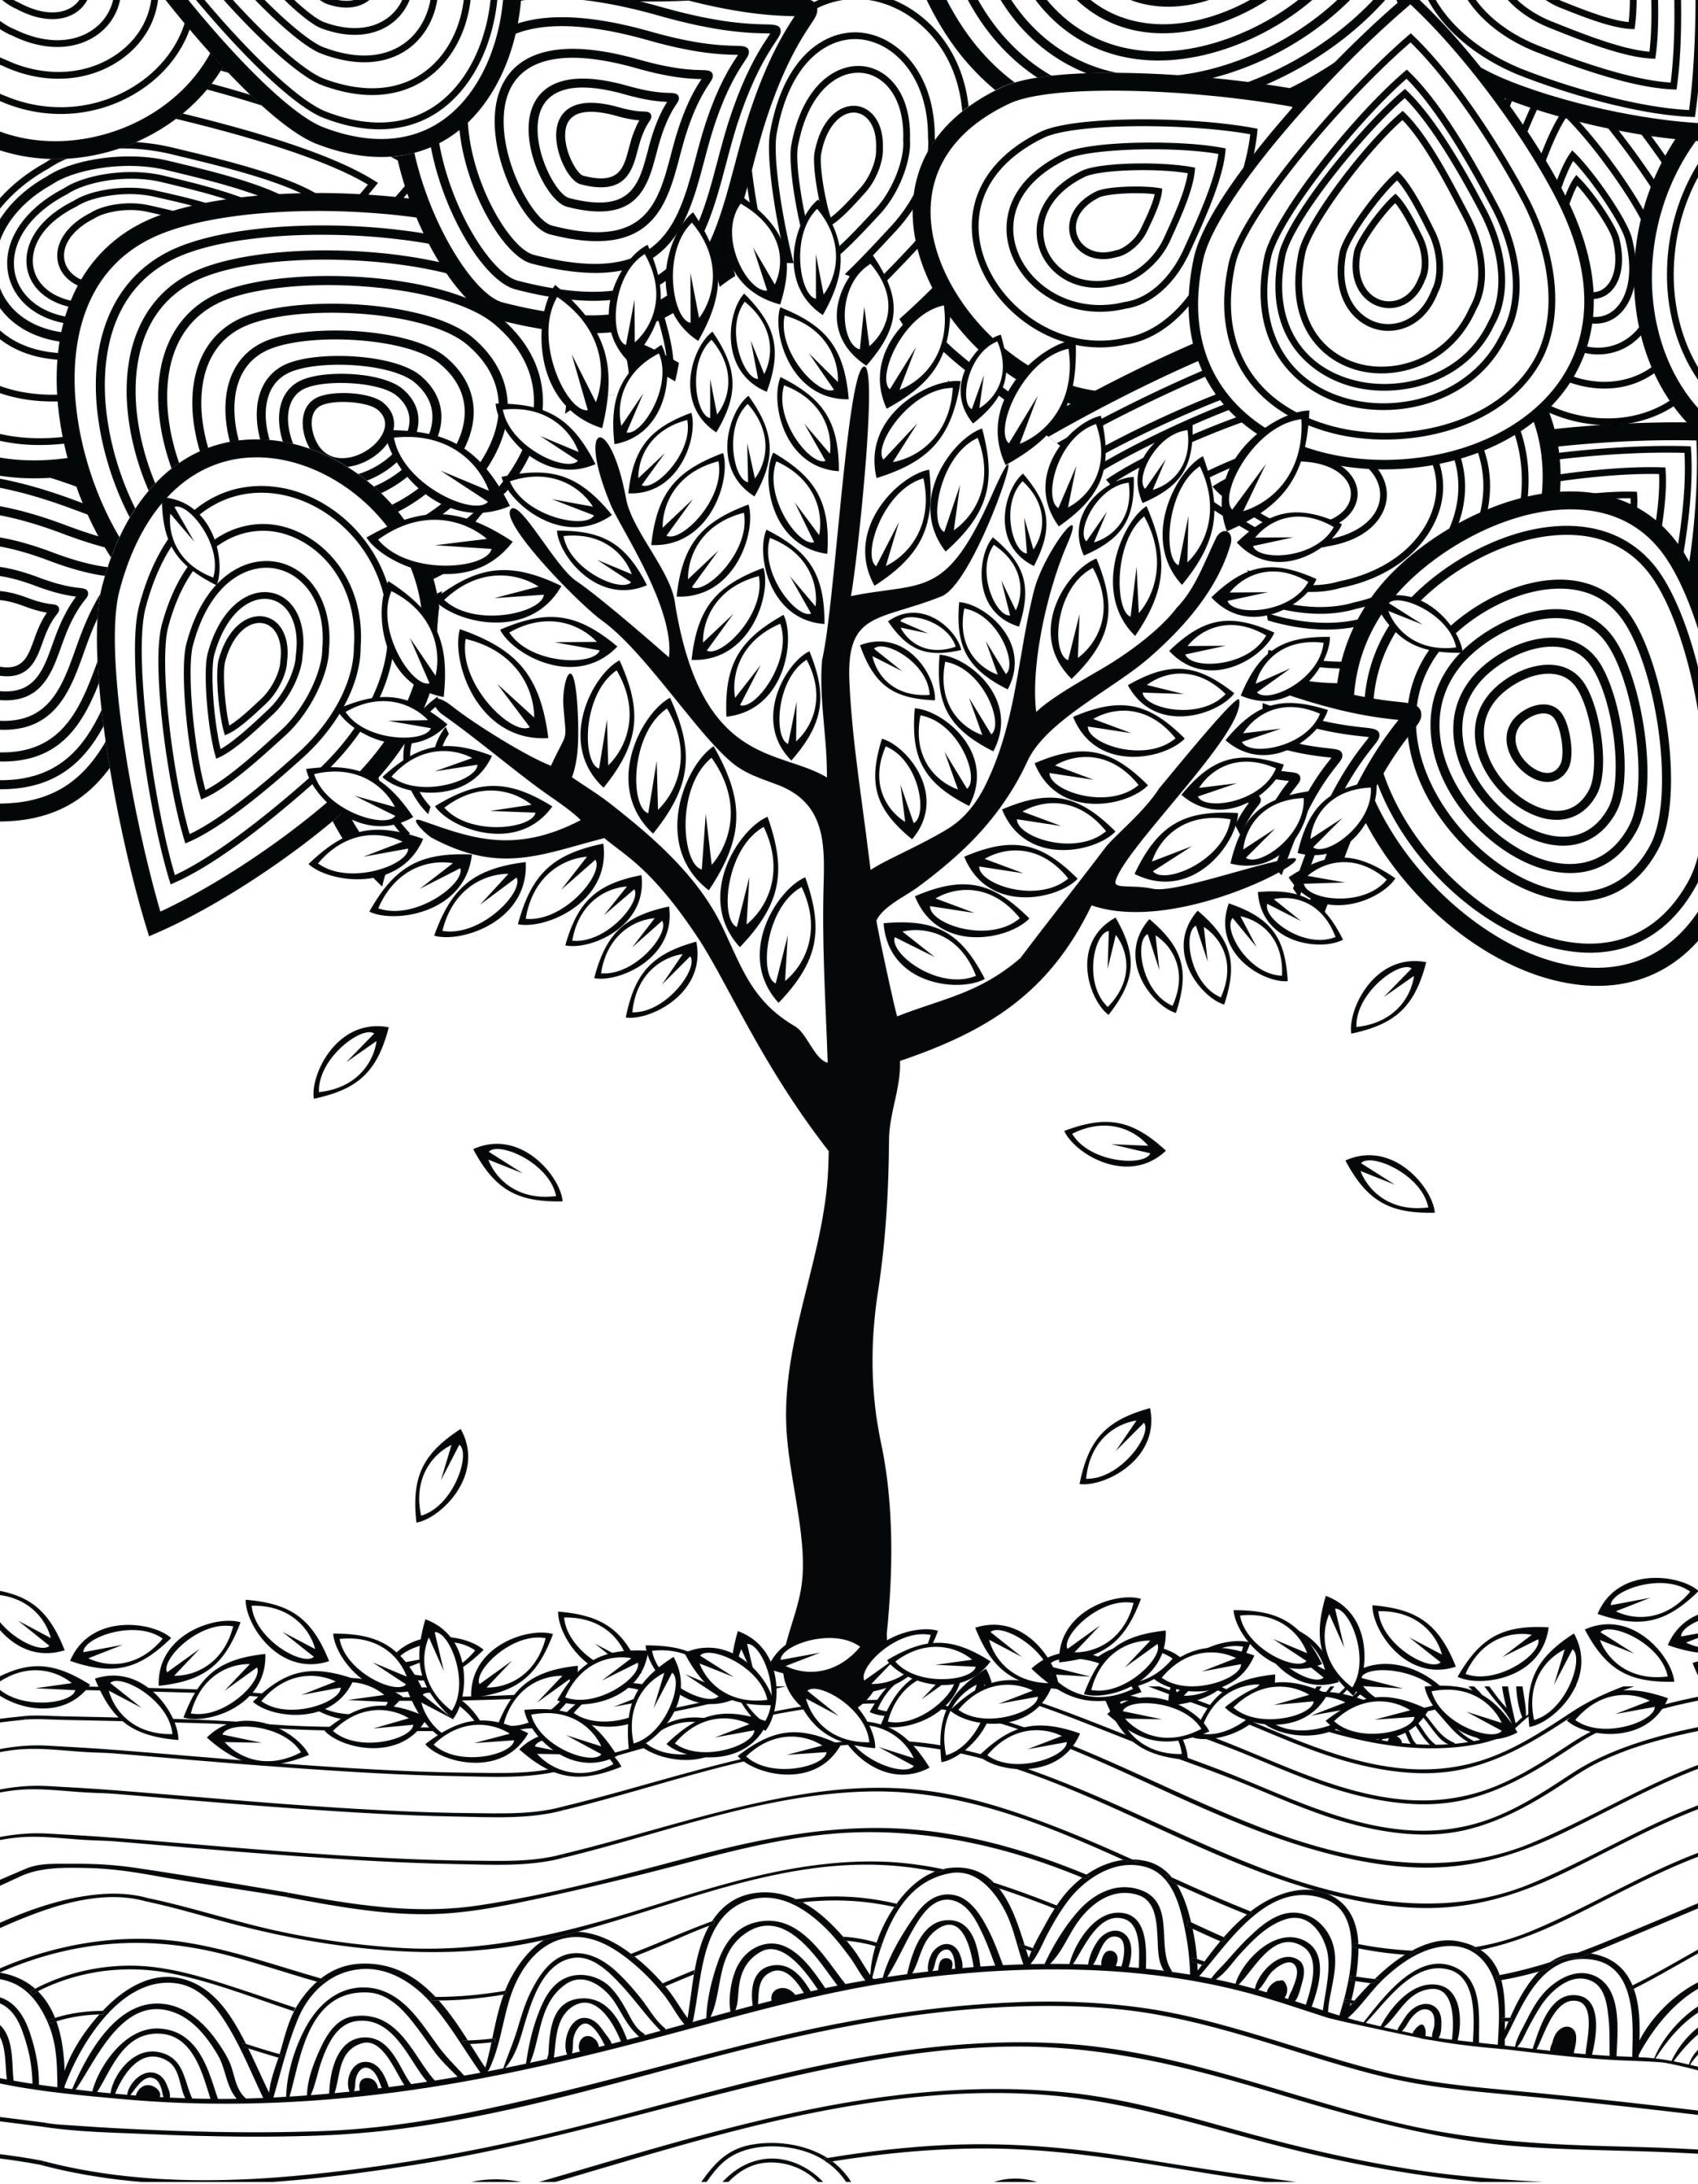 830 Top Colouring Pages Autumn Trees Download Free Images